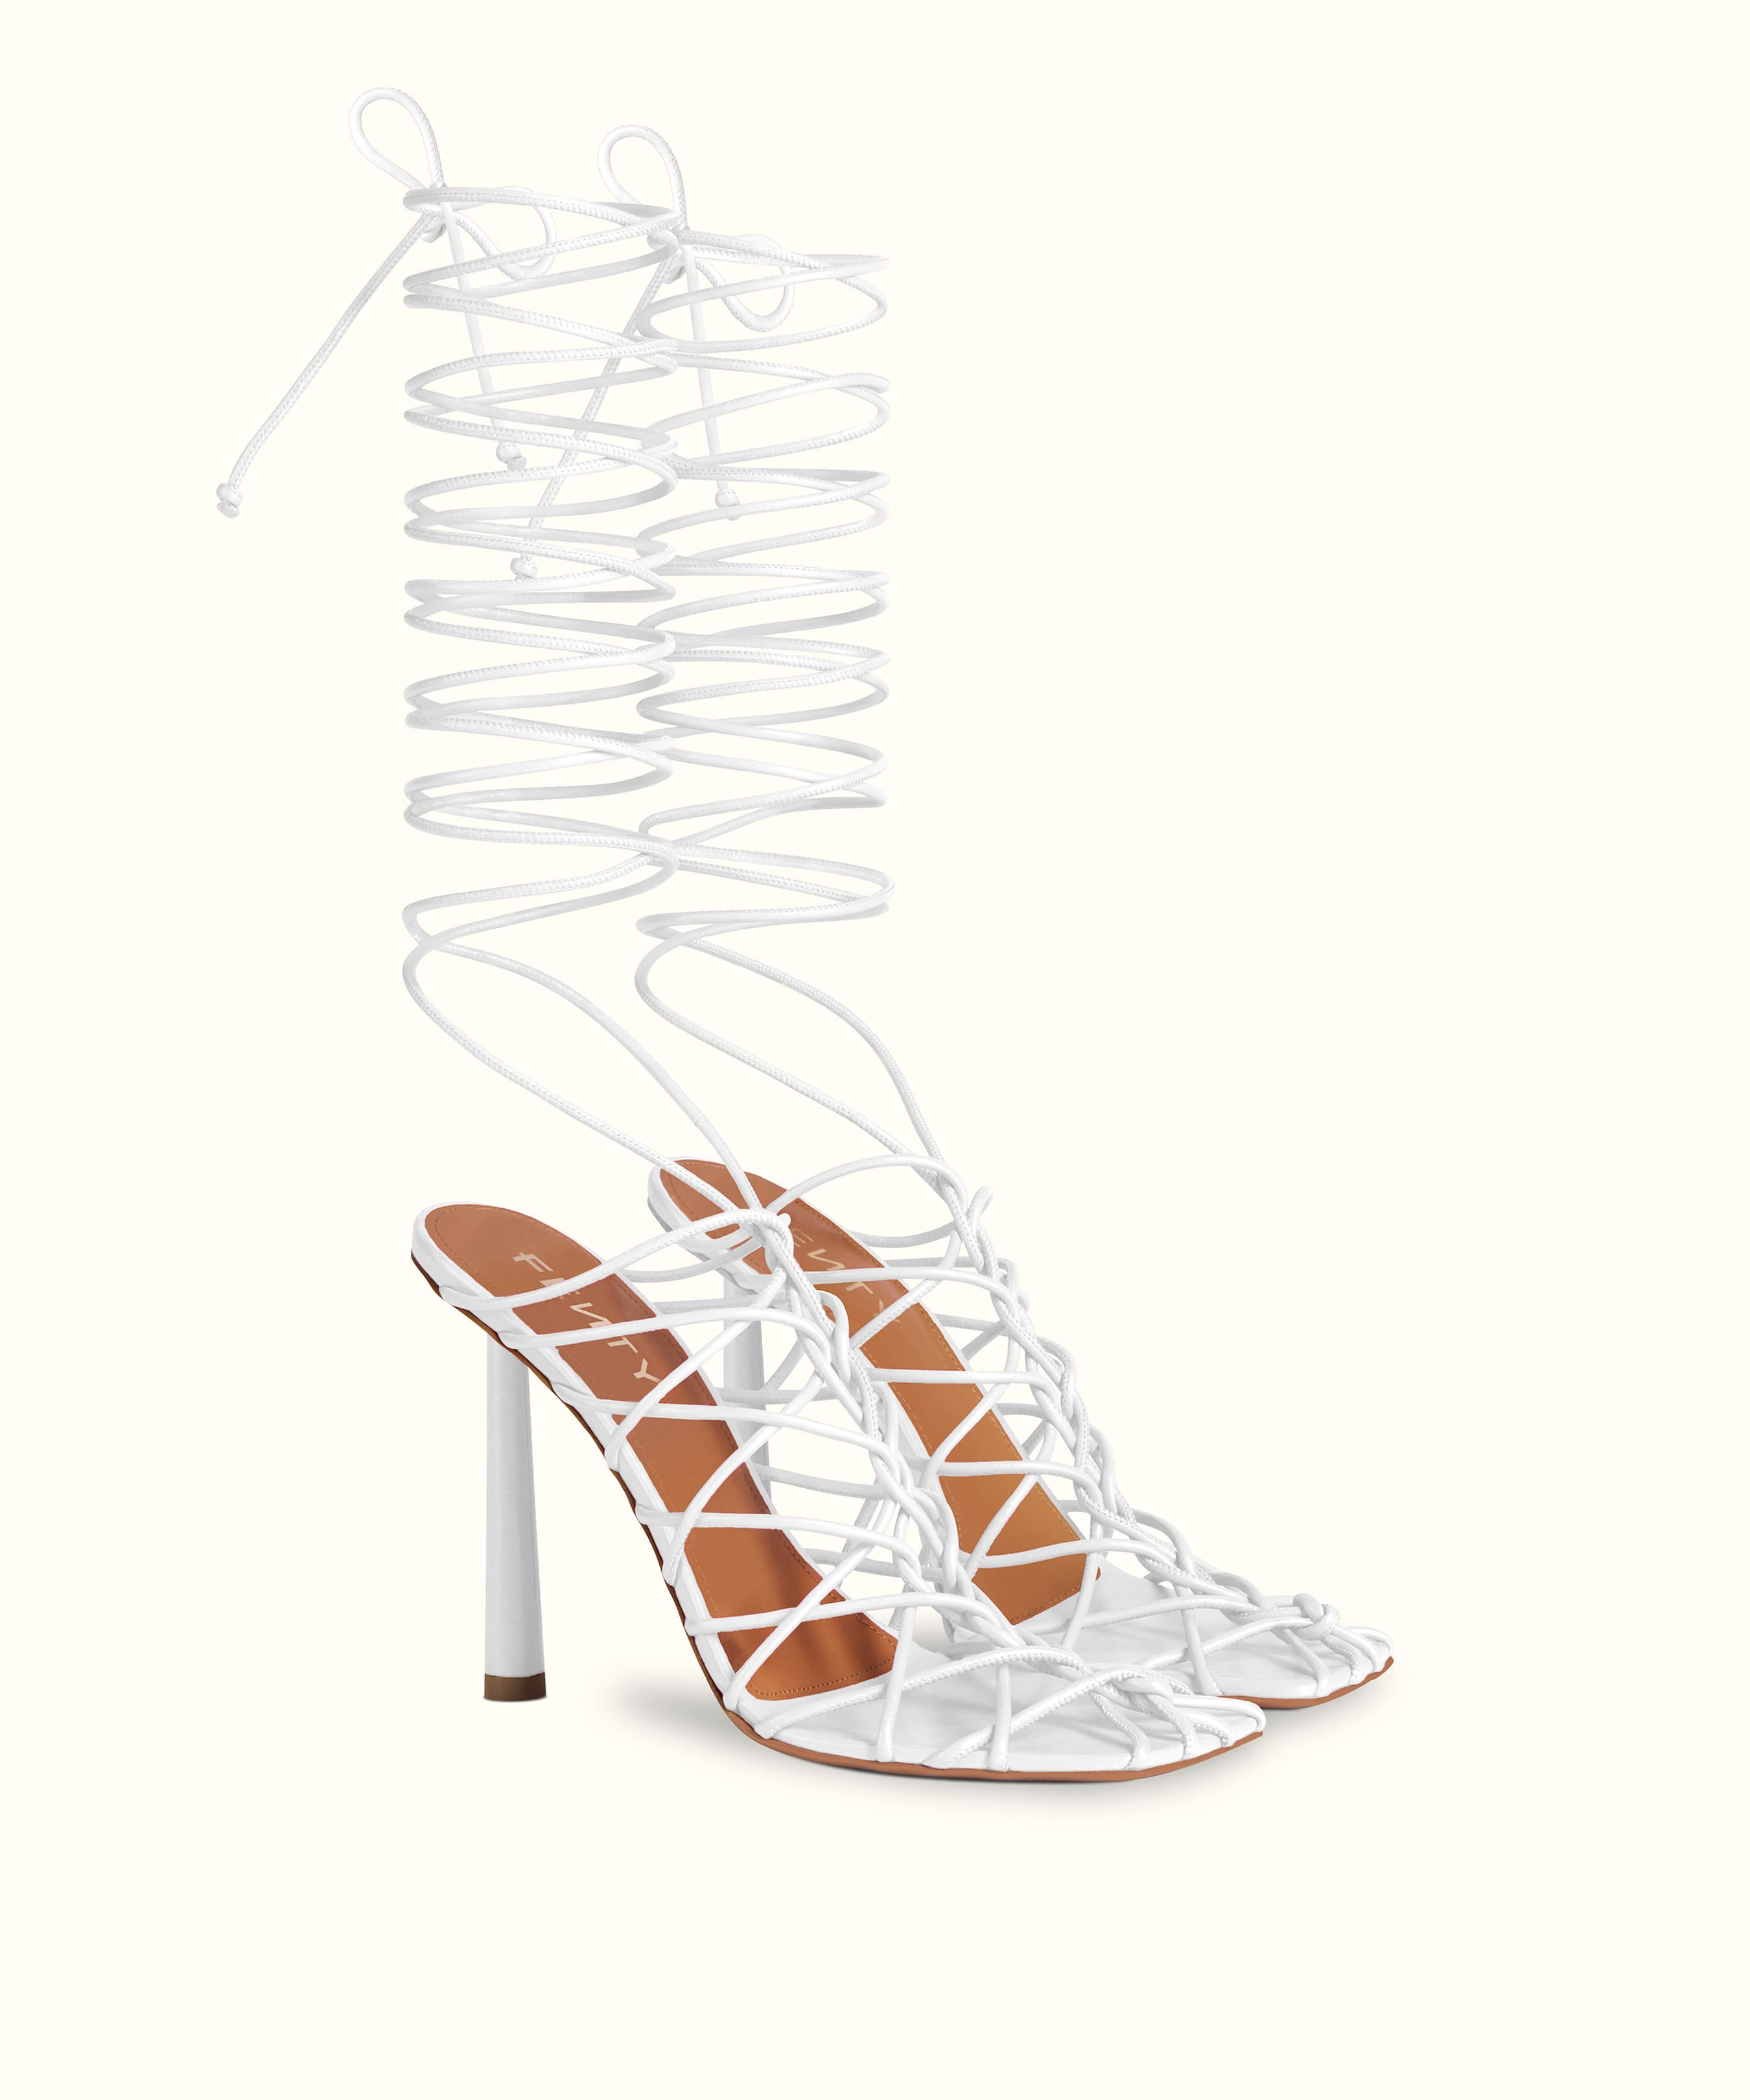 CAGED IN SANDALS 105 by Fenty, available on fenty.com for $740 Rihanna Shoes Exact Product